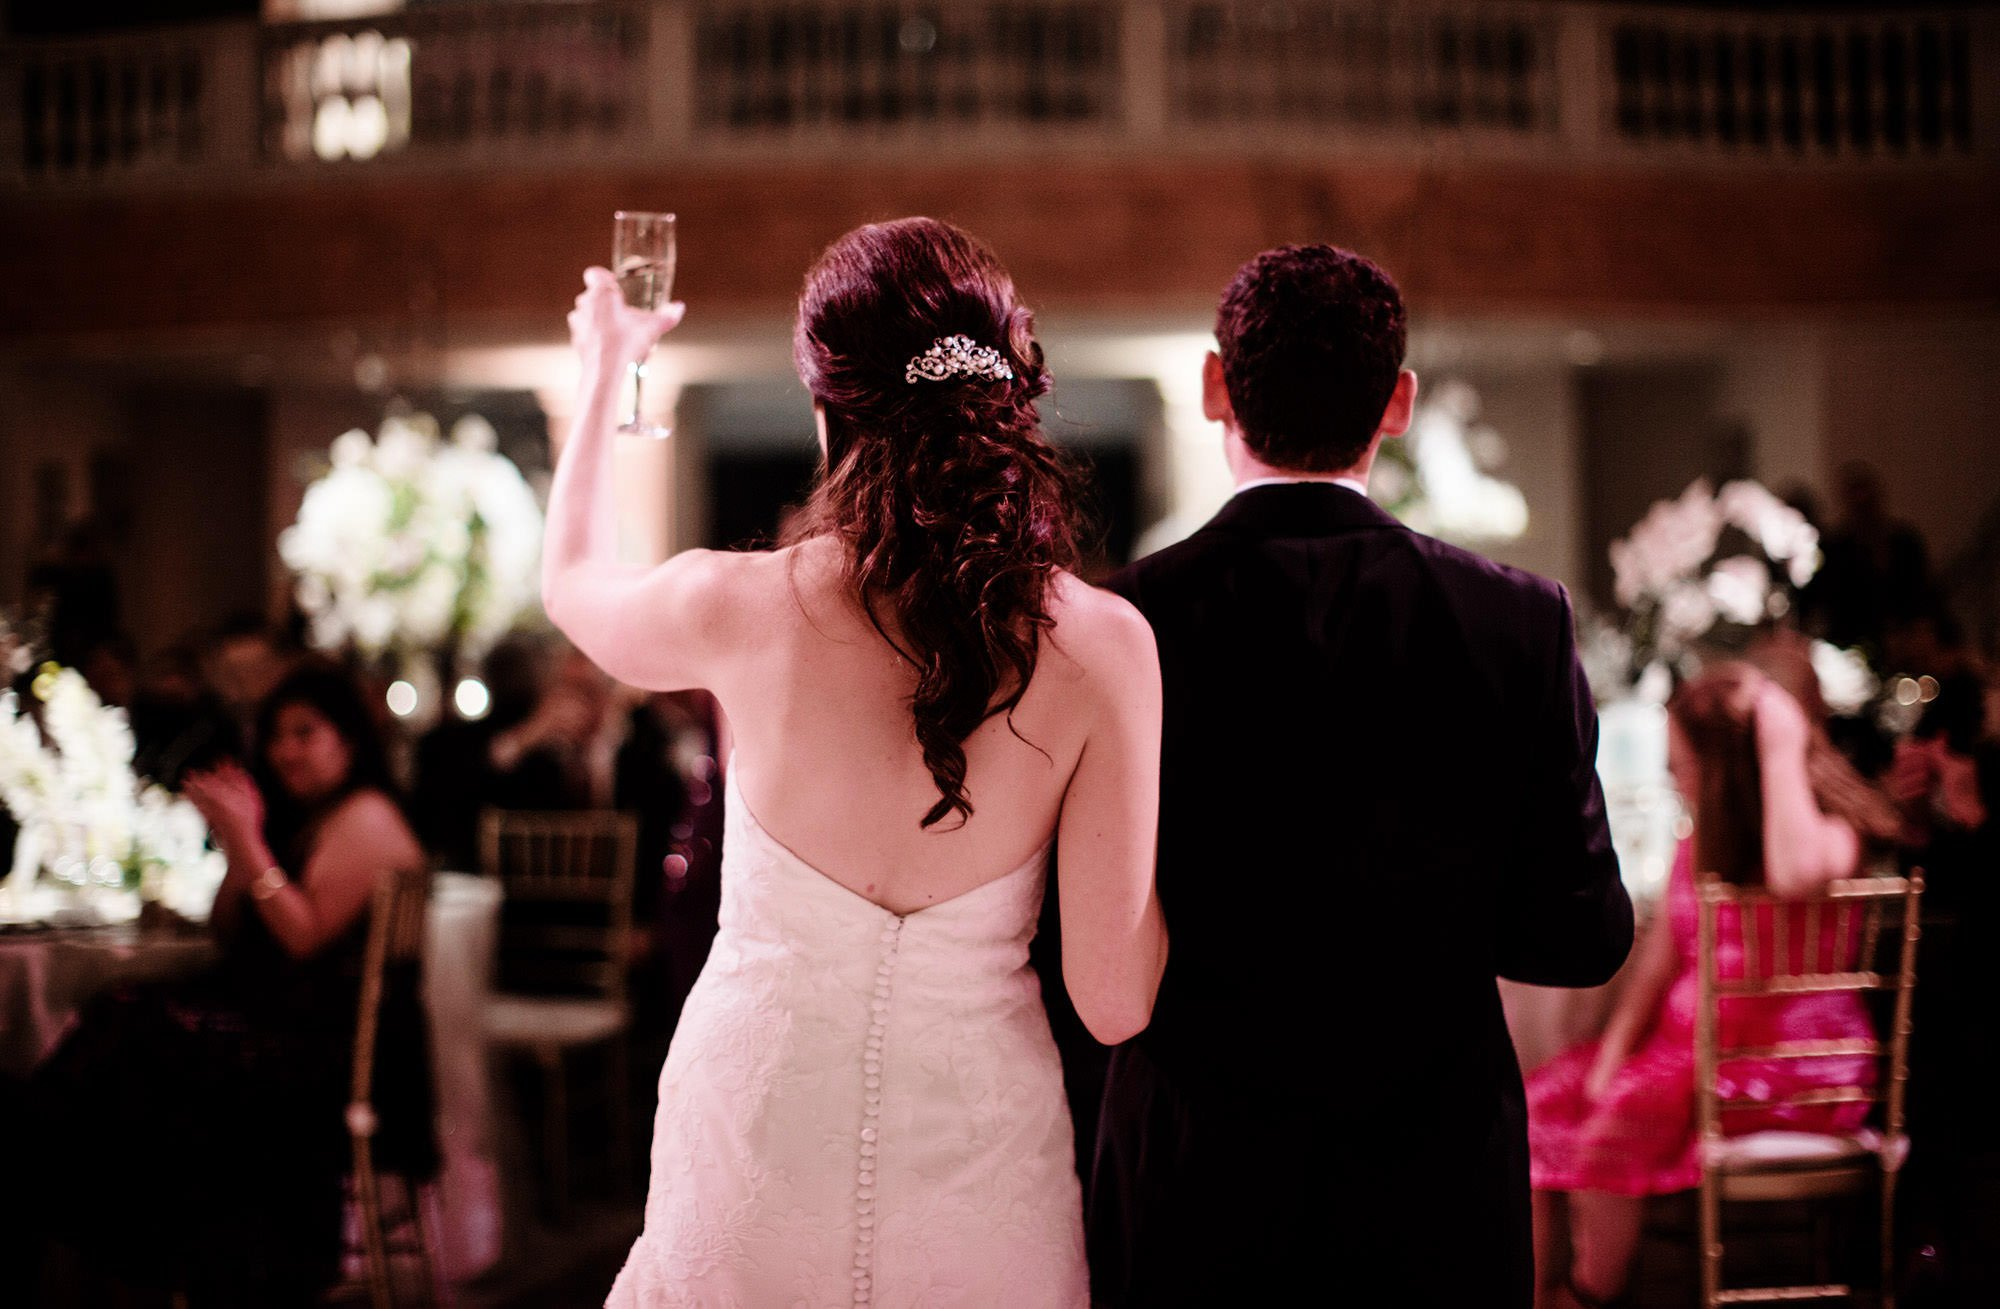 The bride and groom gives a toast during their NMWA wedding reception.